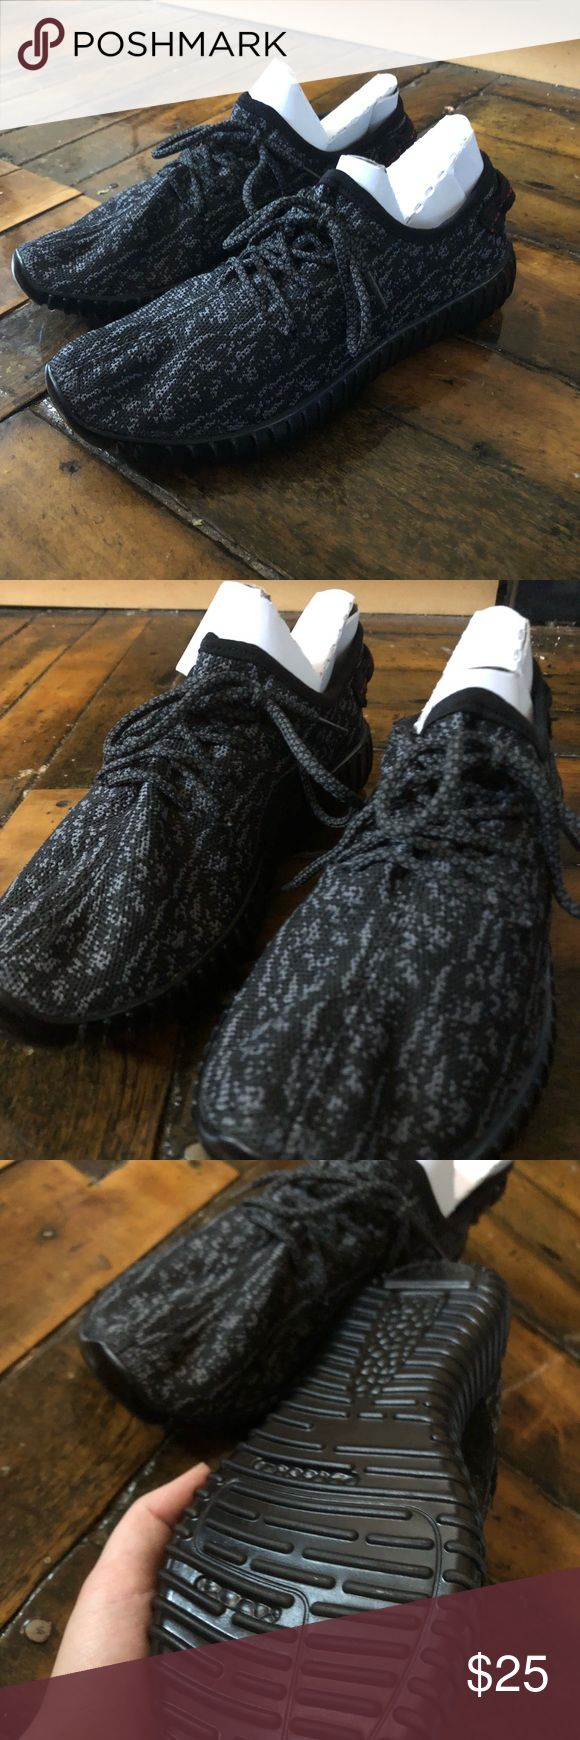 Black Yeezy-looking shoes Price reflects authenticity. These are super comfy! I tried them on once. Yeezy Shoes Sneakers